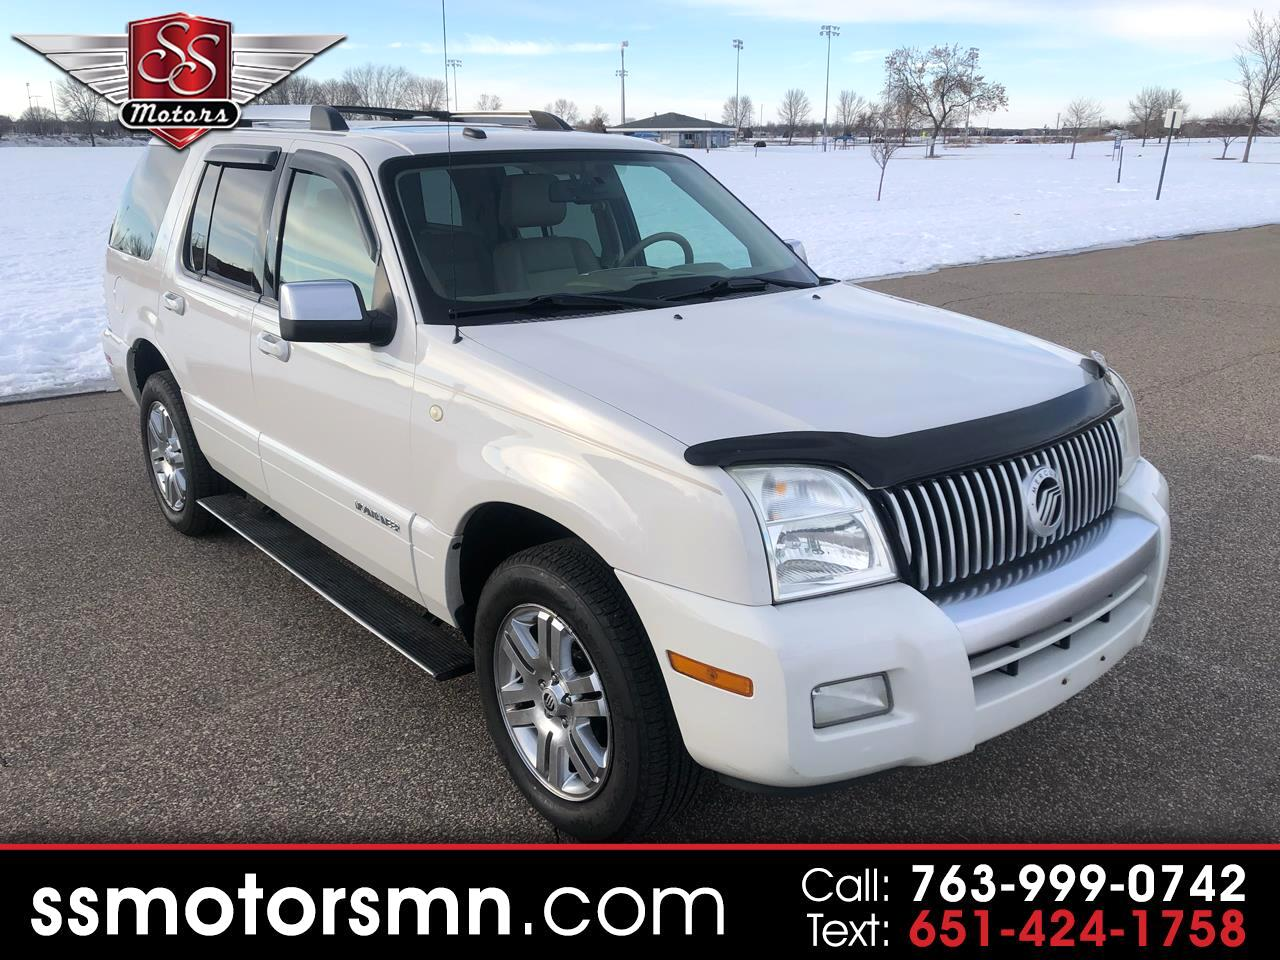 Mercury Mountaineer Premier 4.6L AWD 2008